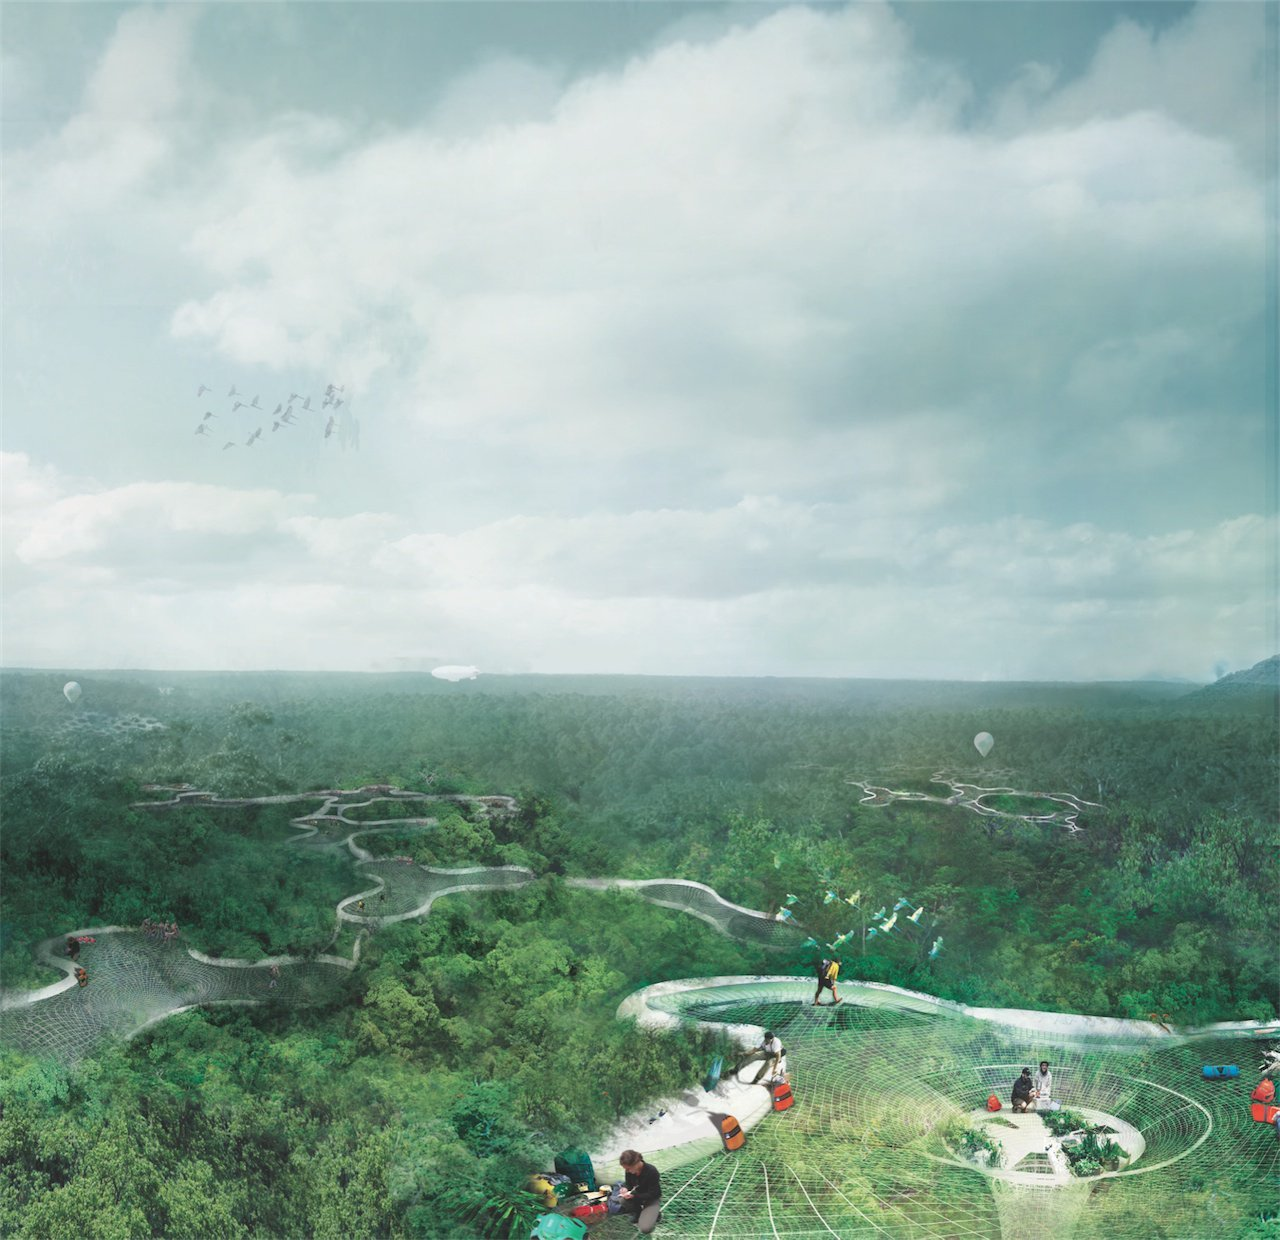 Best Image Architectural Association's Foster + Partners Prize 2012 Goes to Yi Yvonne Weng